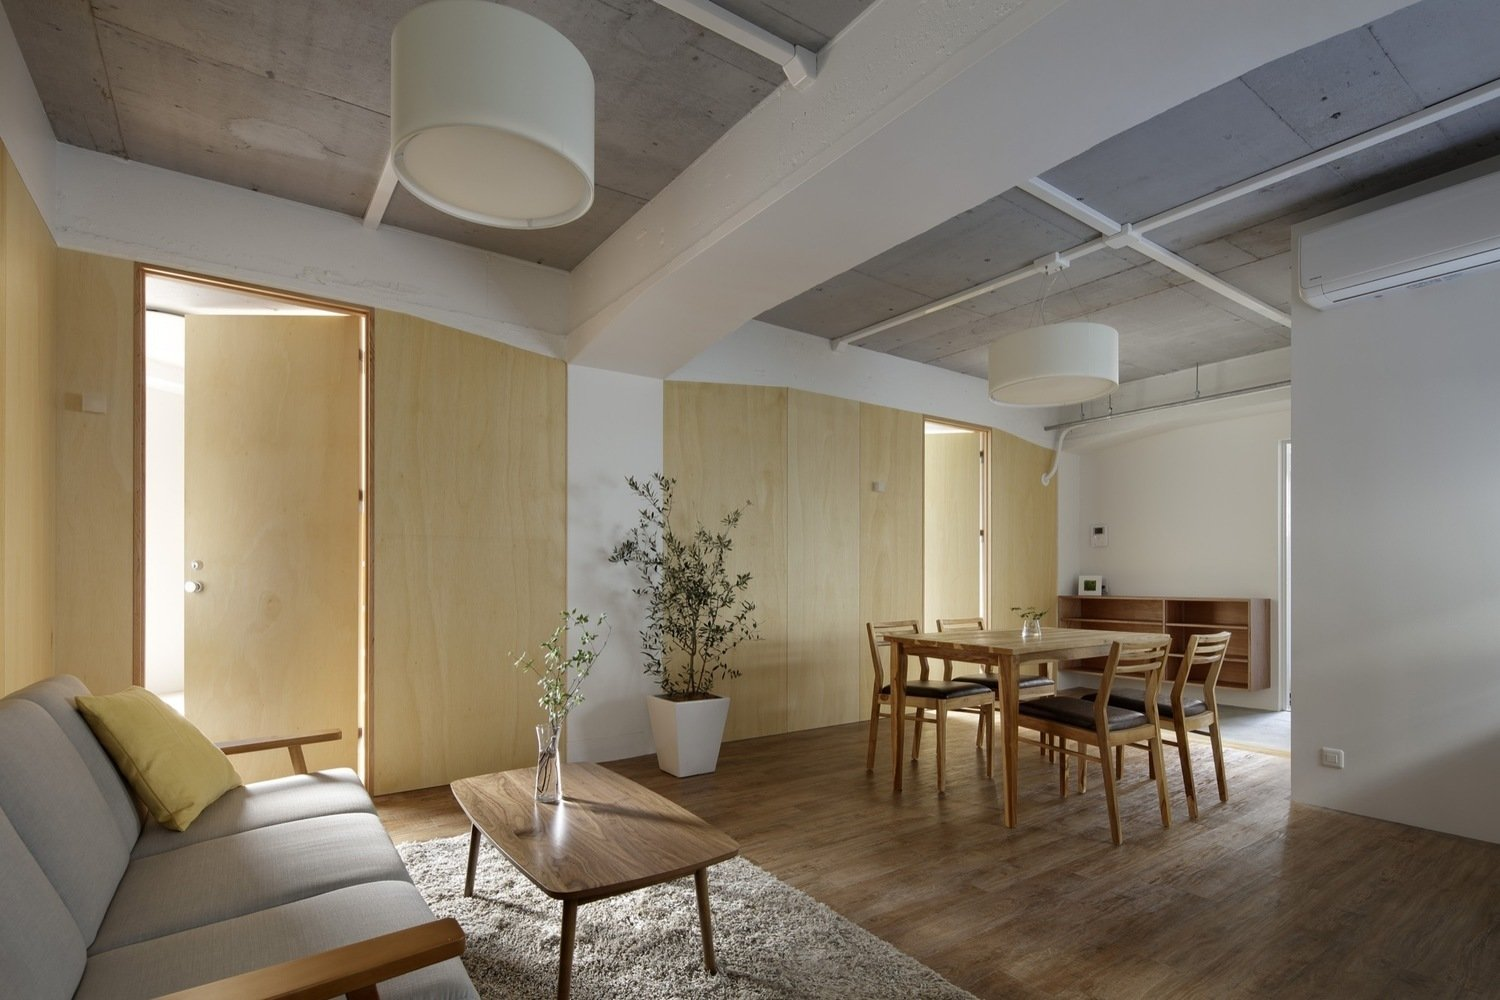 Photo 2 of 4 in Serviced Apartments in Otsuka by Takashi Nishitani Architects